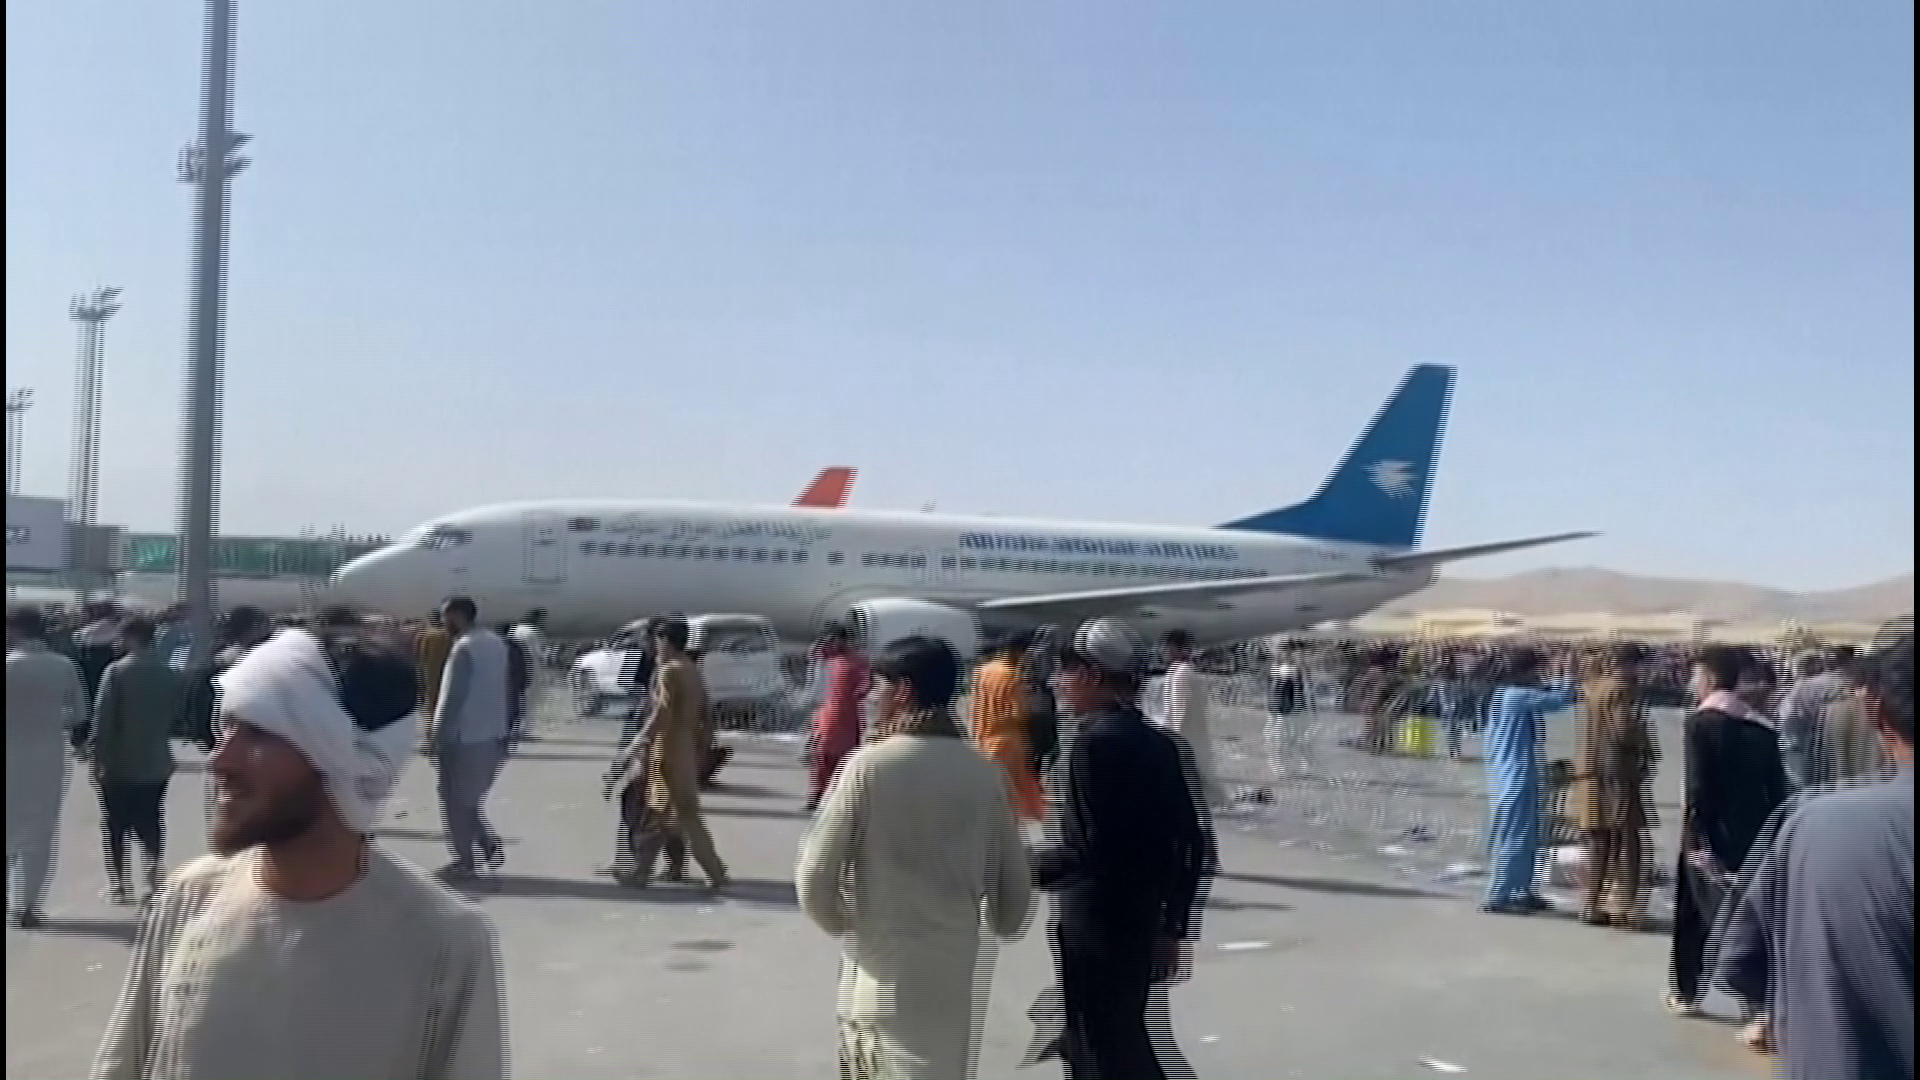 Desperate Afghans crowd Kabul airport apron to flee Taliban